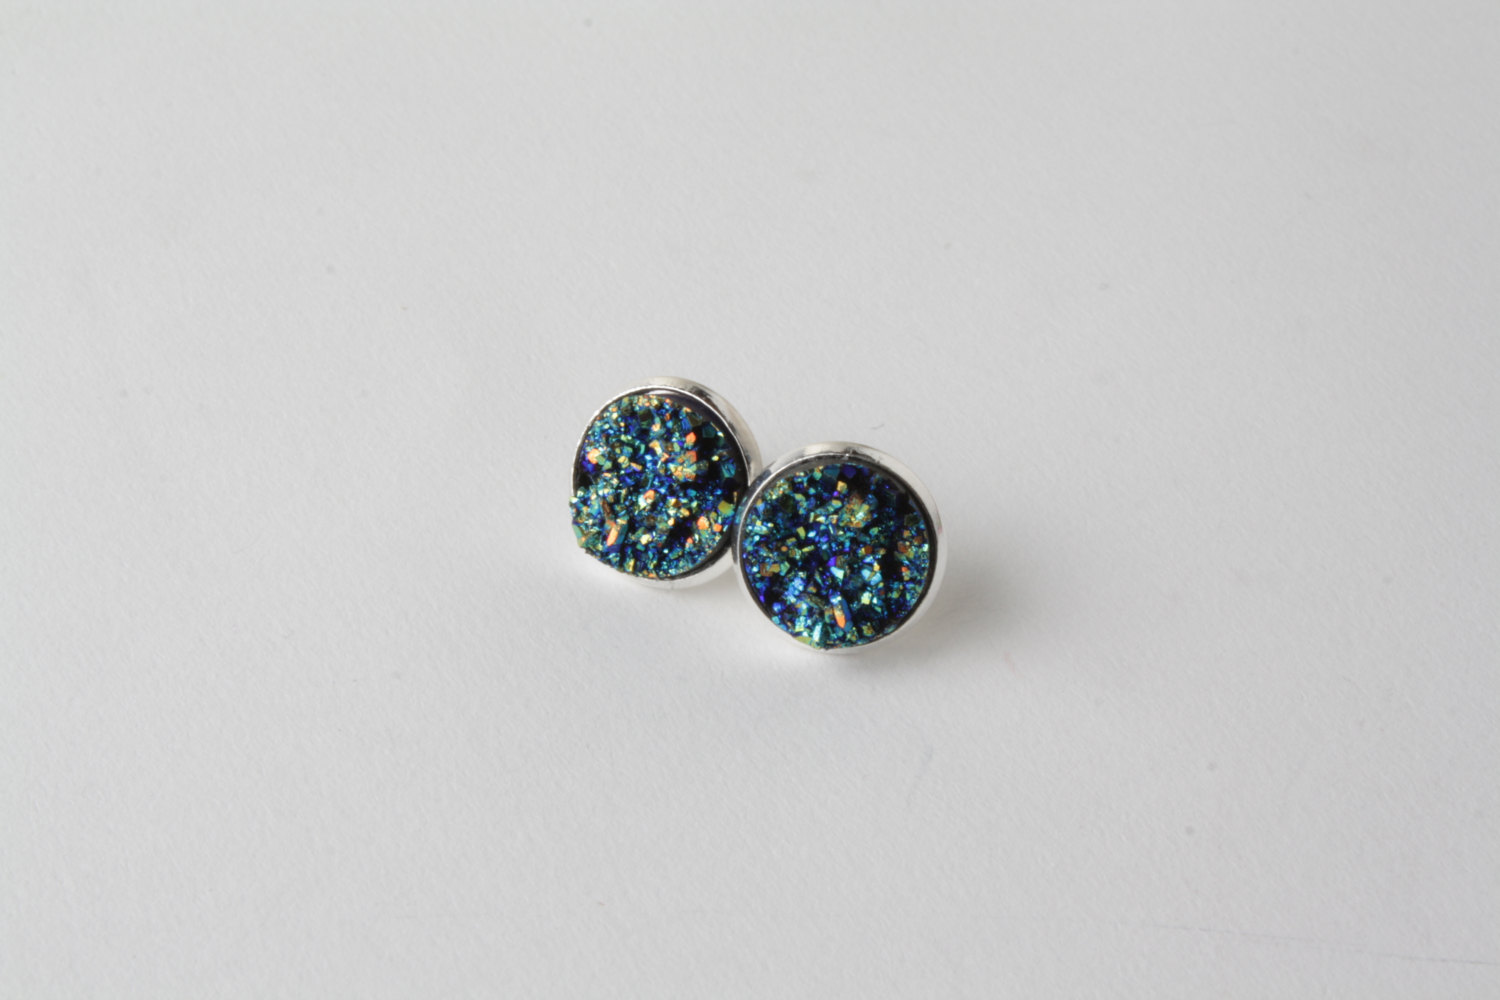 stones for bkwt aeravida sparkly covered touch yang are earrings these of a sterling stud ce with details cubic yin crafted silver balance sparkle zirconia products